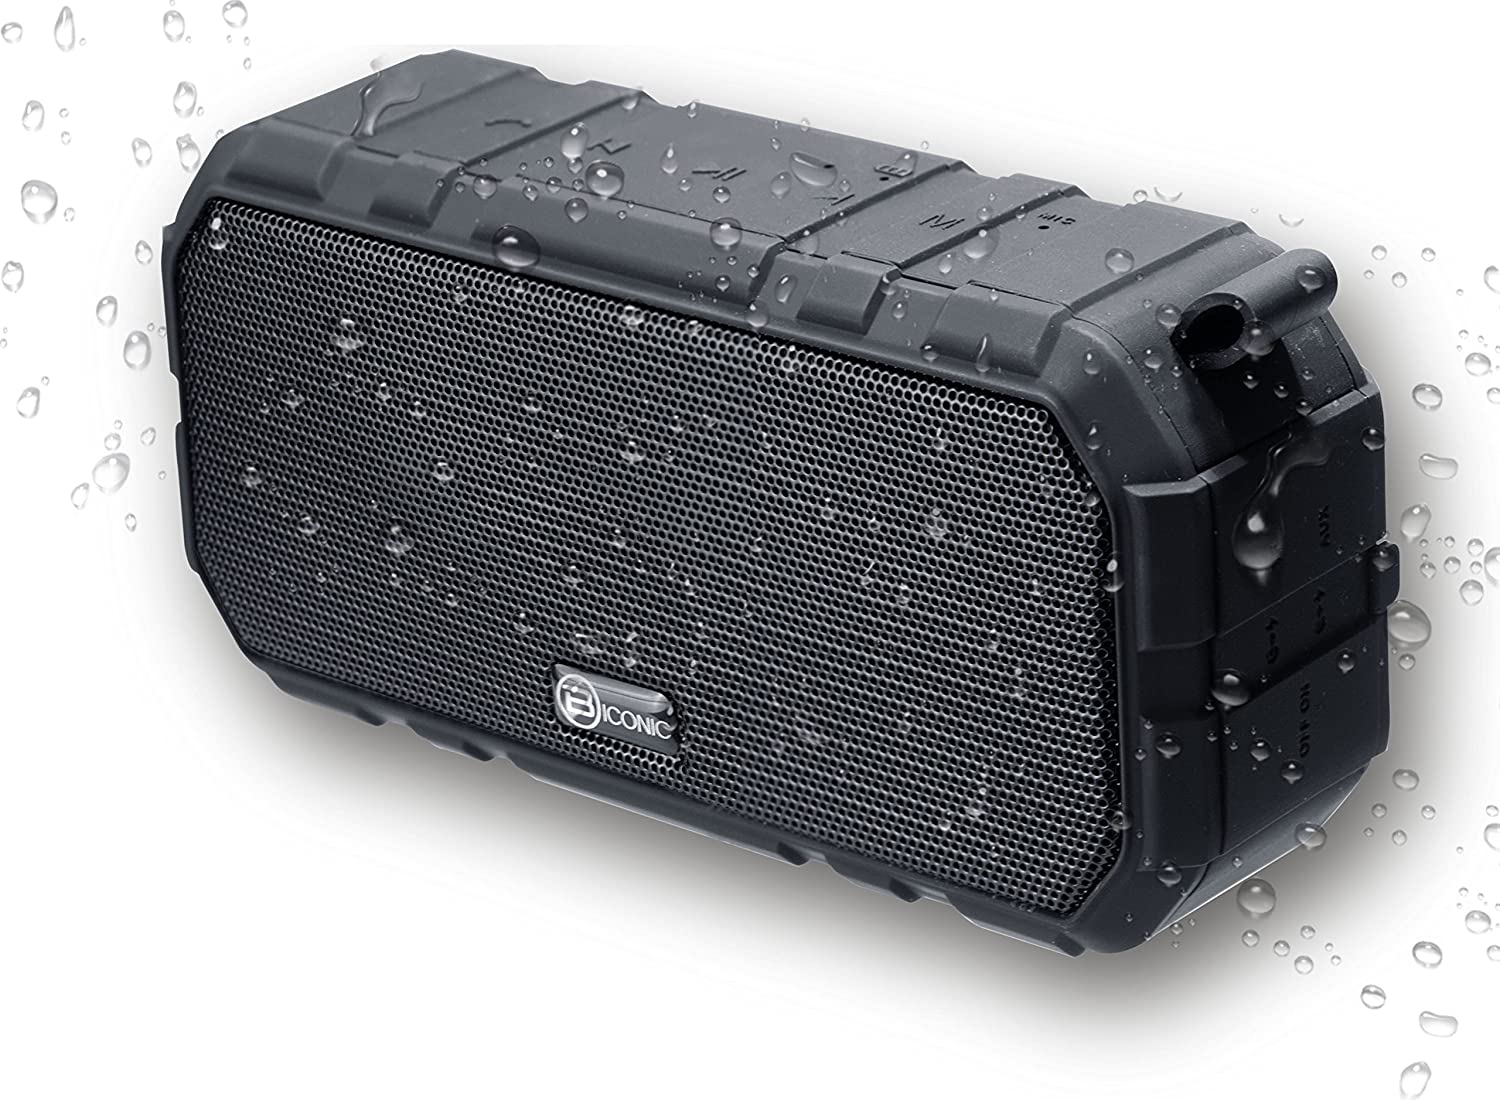 Biconic Bluetooth Tough Weatherproof Enhanced Bass Portable